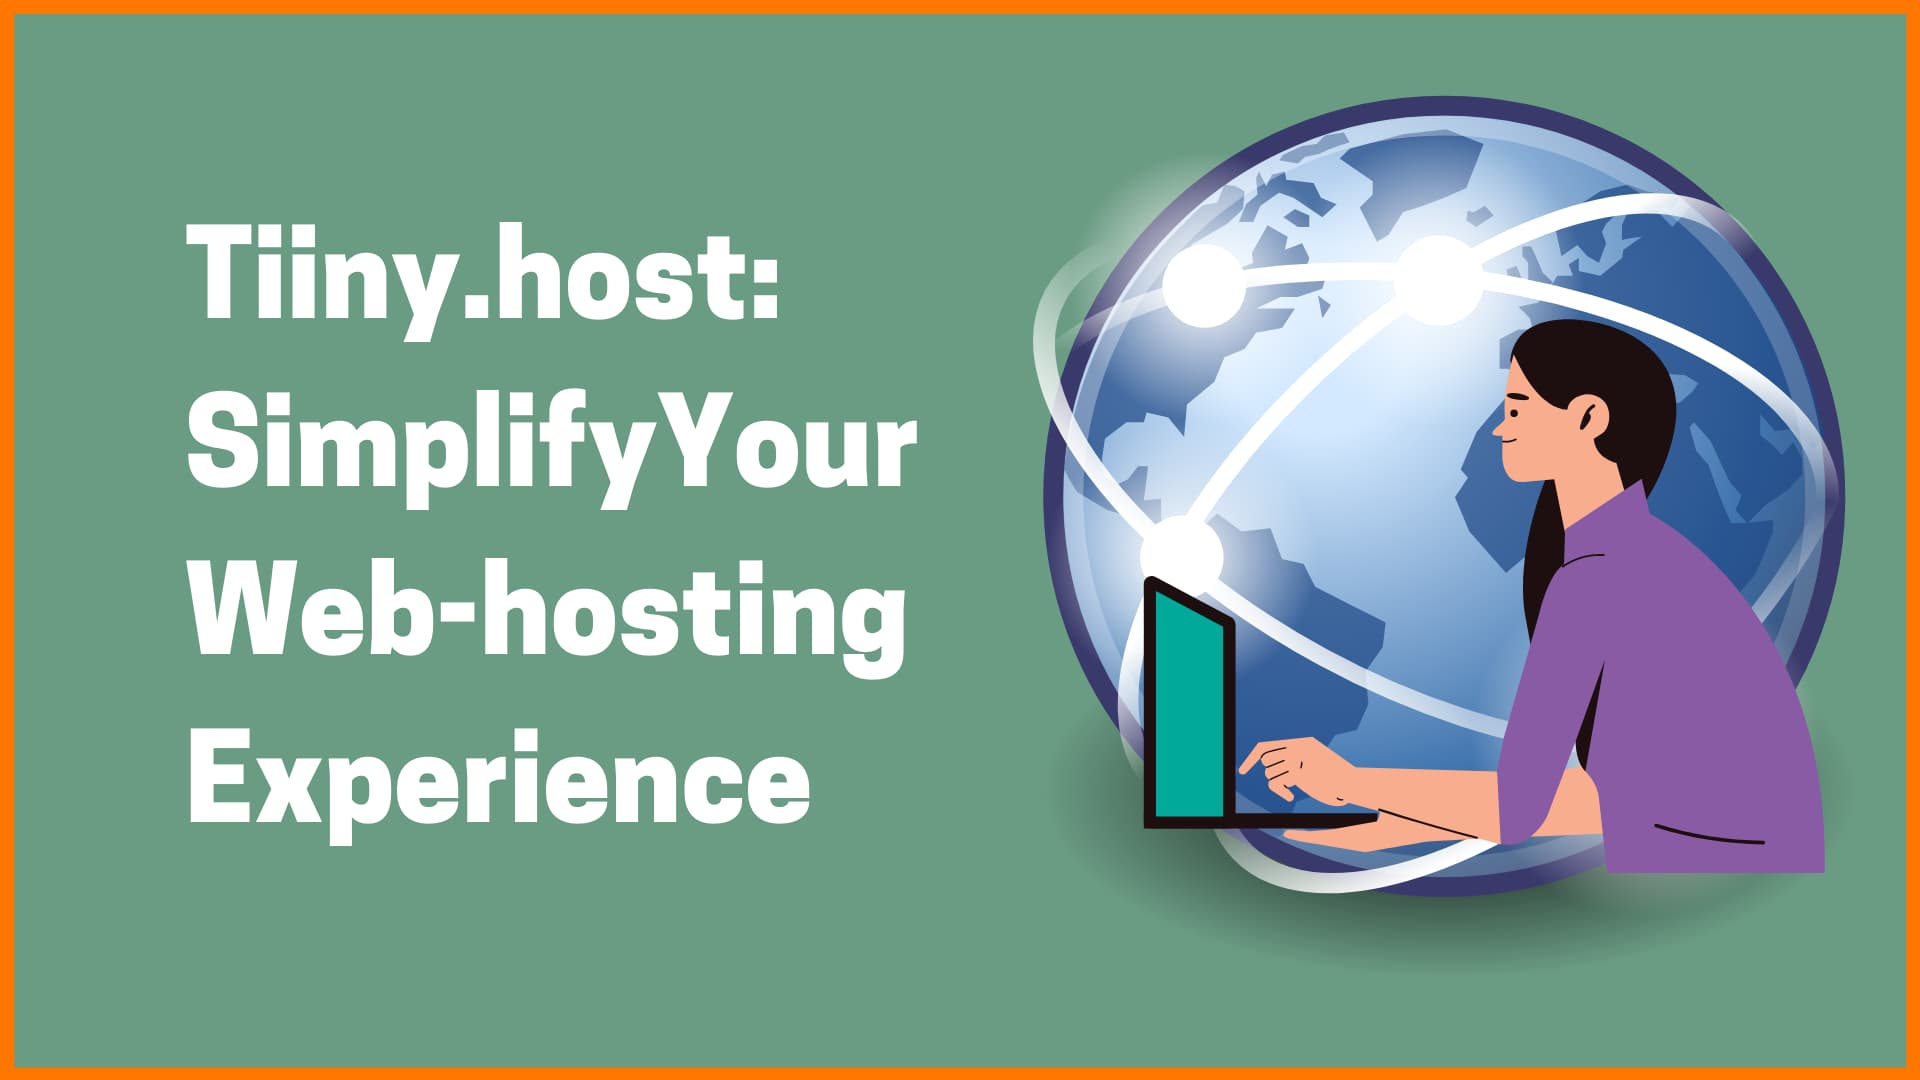 Tiiny.host: Simplify Your Web-hosting Experience